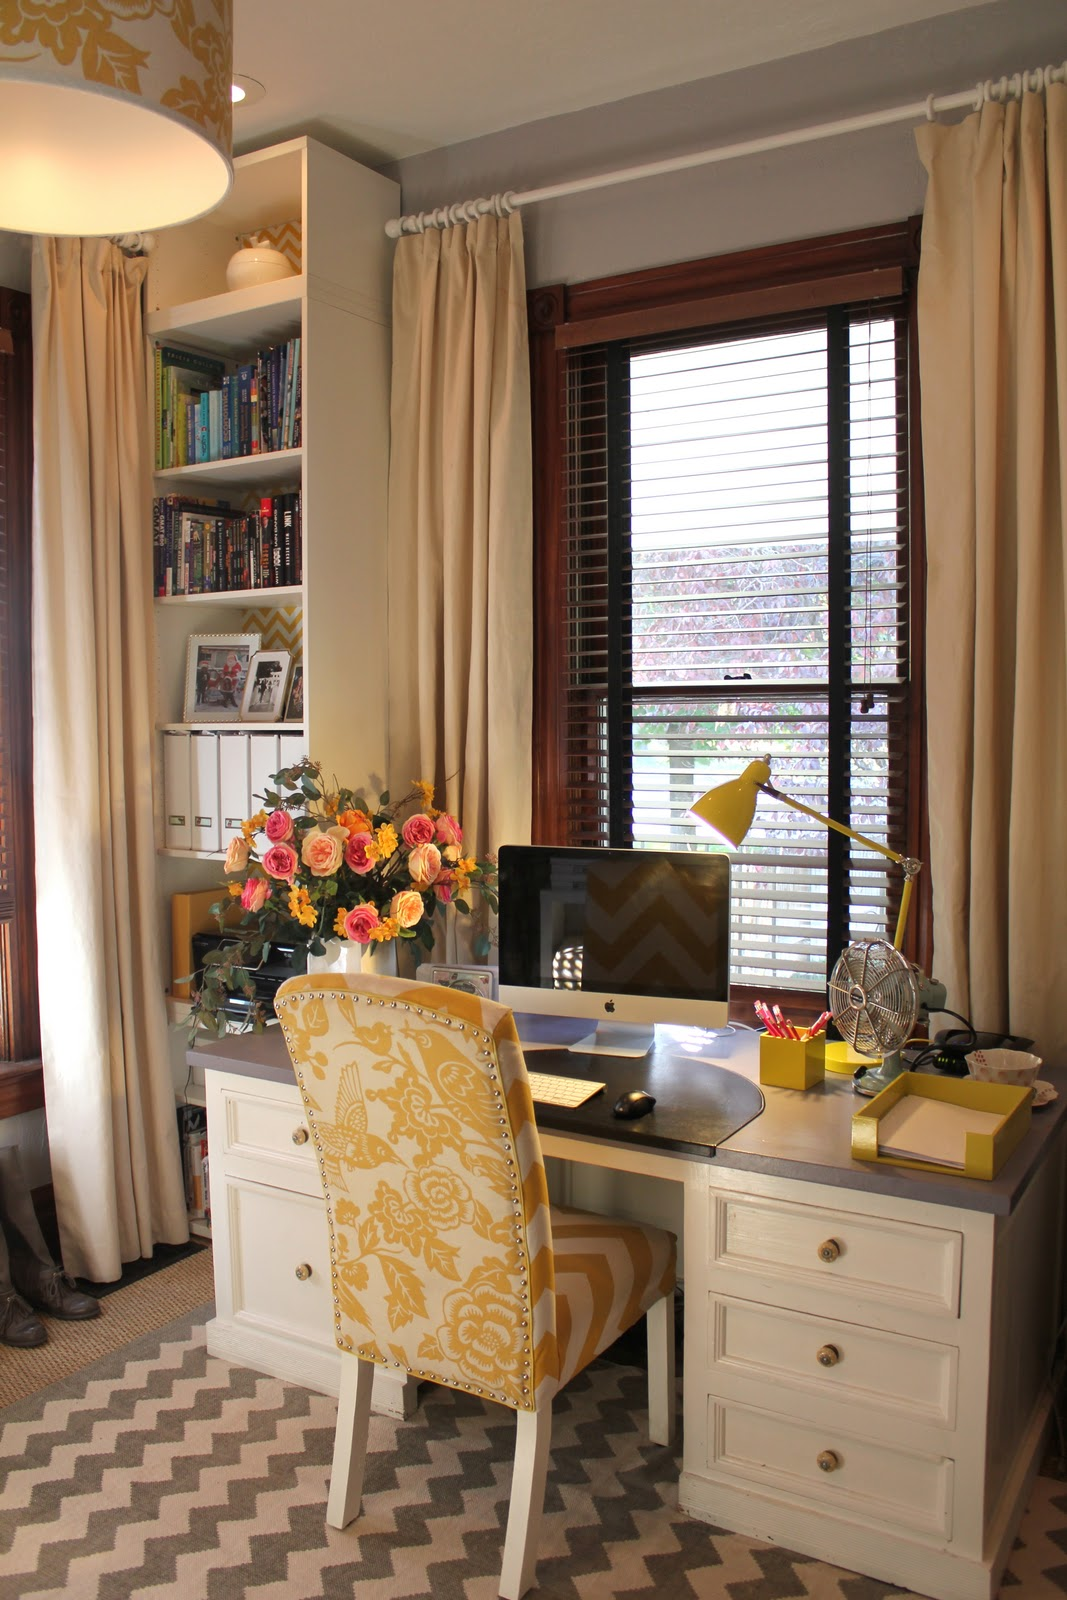 Back on Festive Road: Apartment Therapy Room for Color 2011